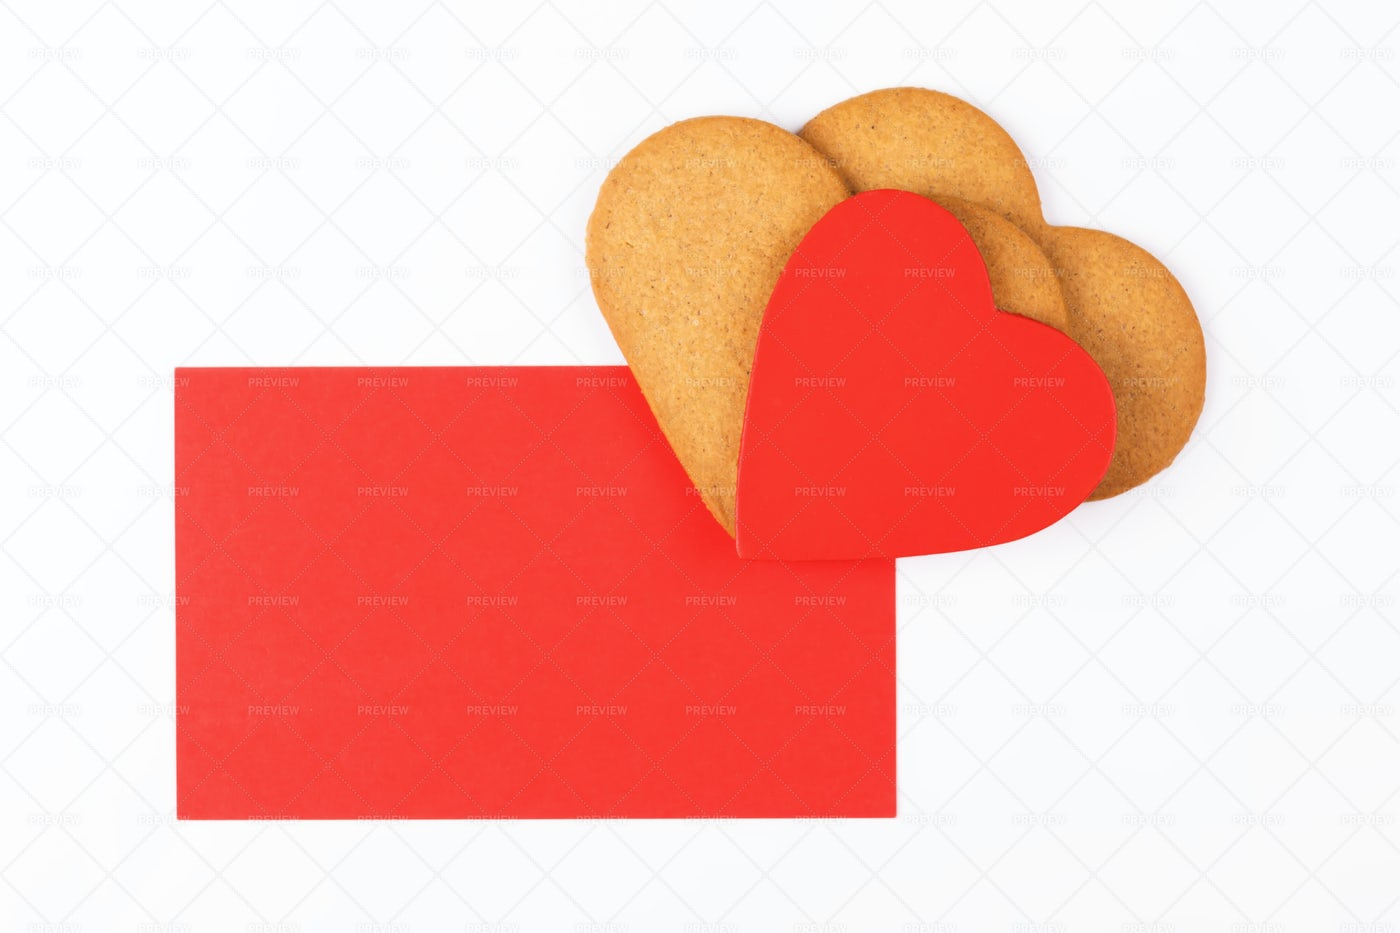 Greeting Card With Heart Cookies: Stock Photos